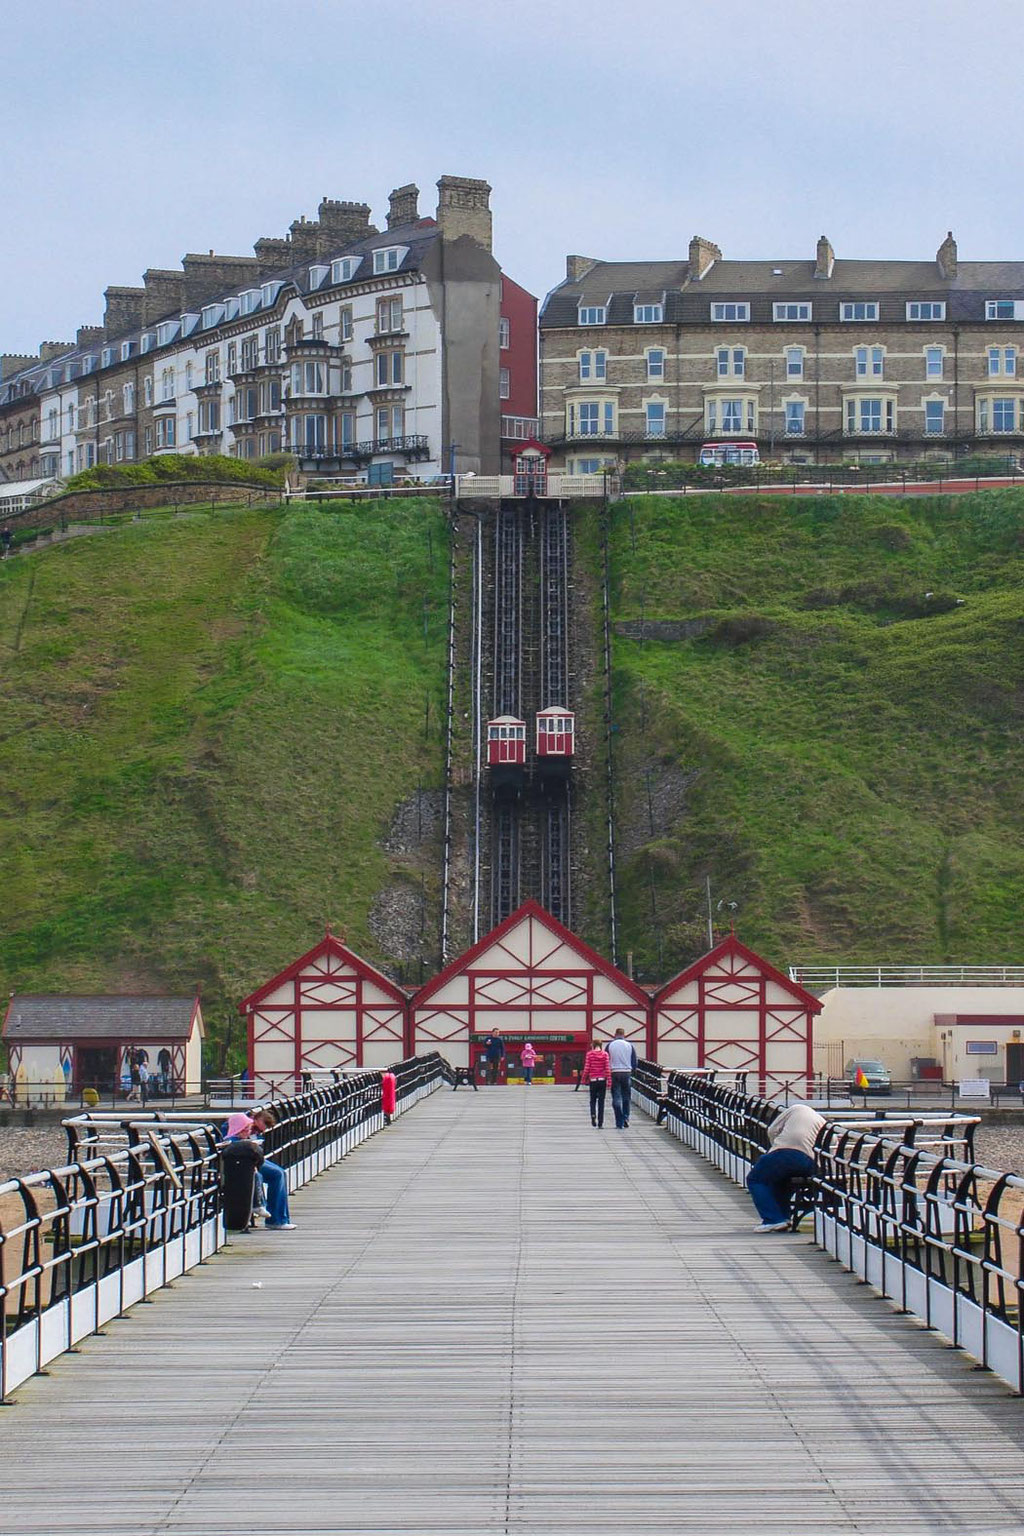 Saltburn-by-the-Sea, Yorkshire (UK)